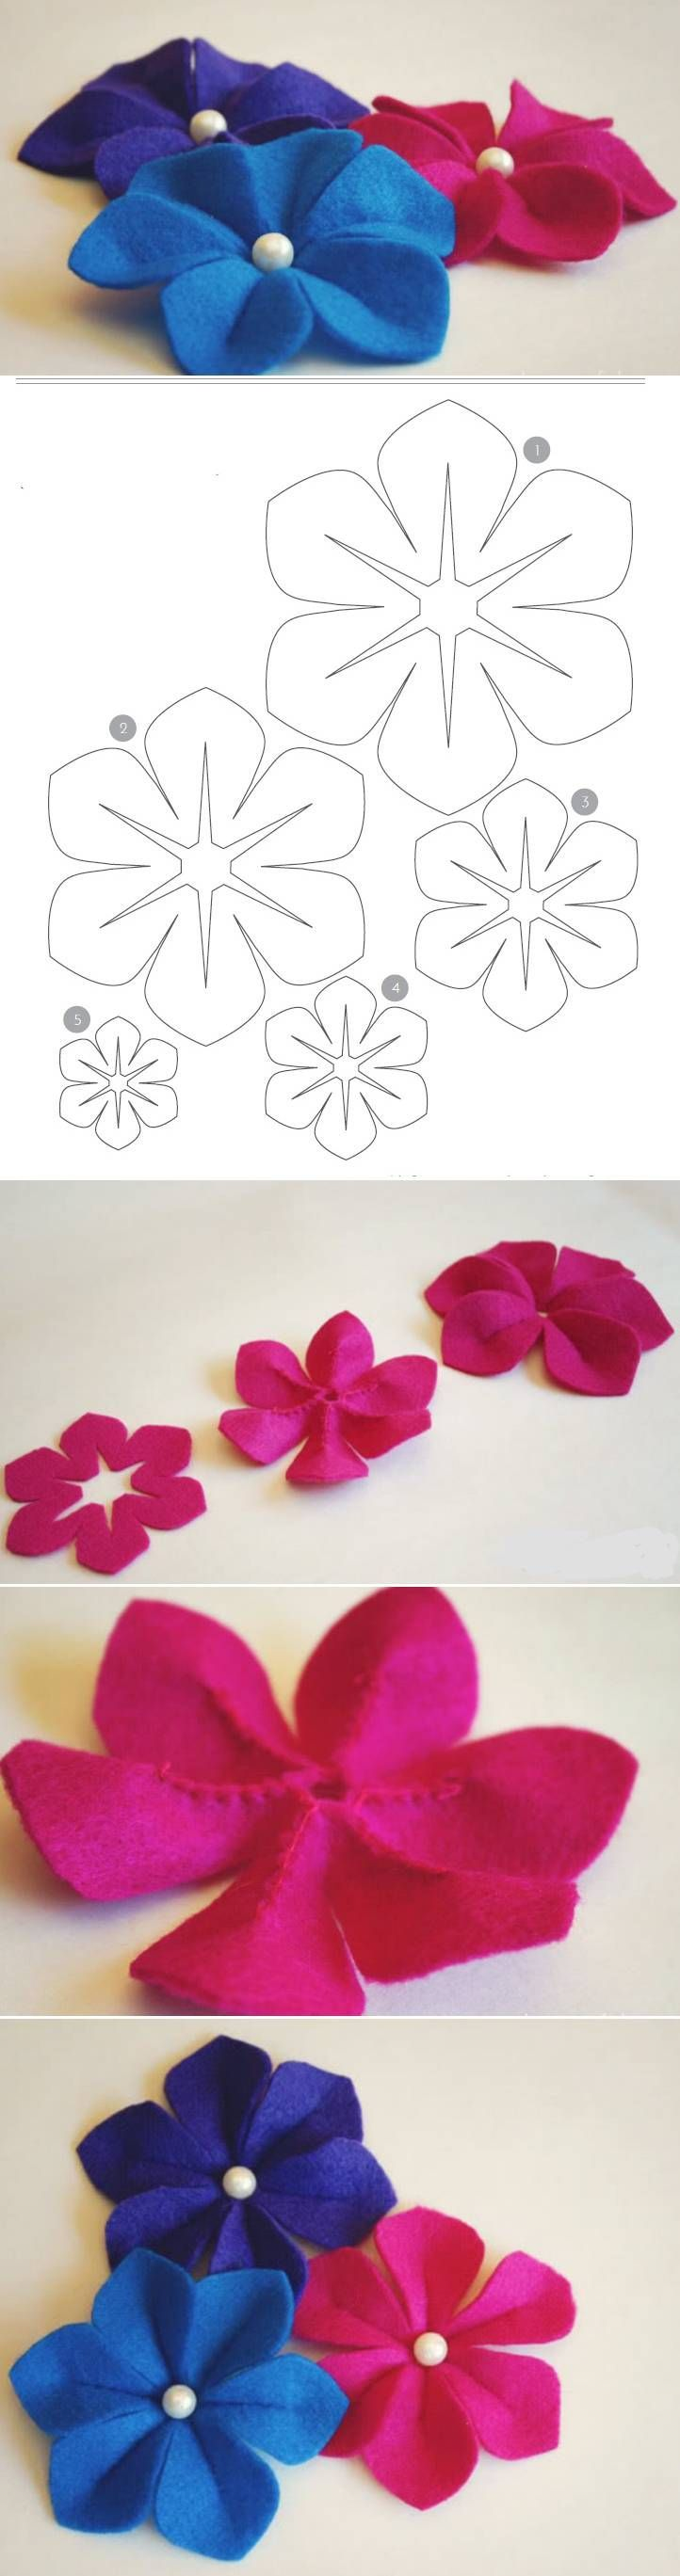 DIY Easy Felt Flower: